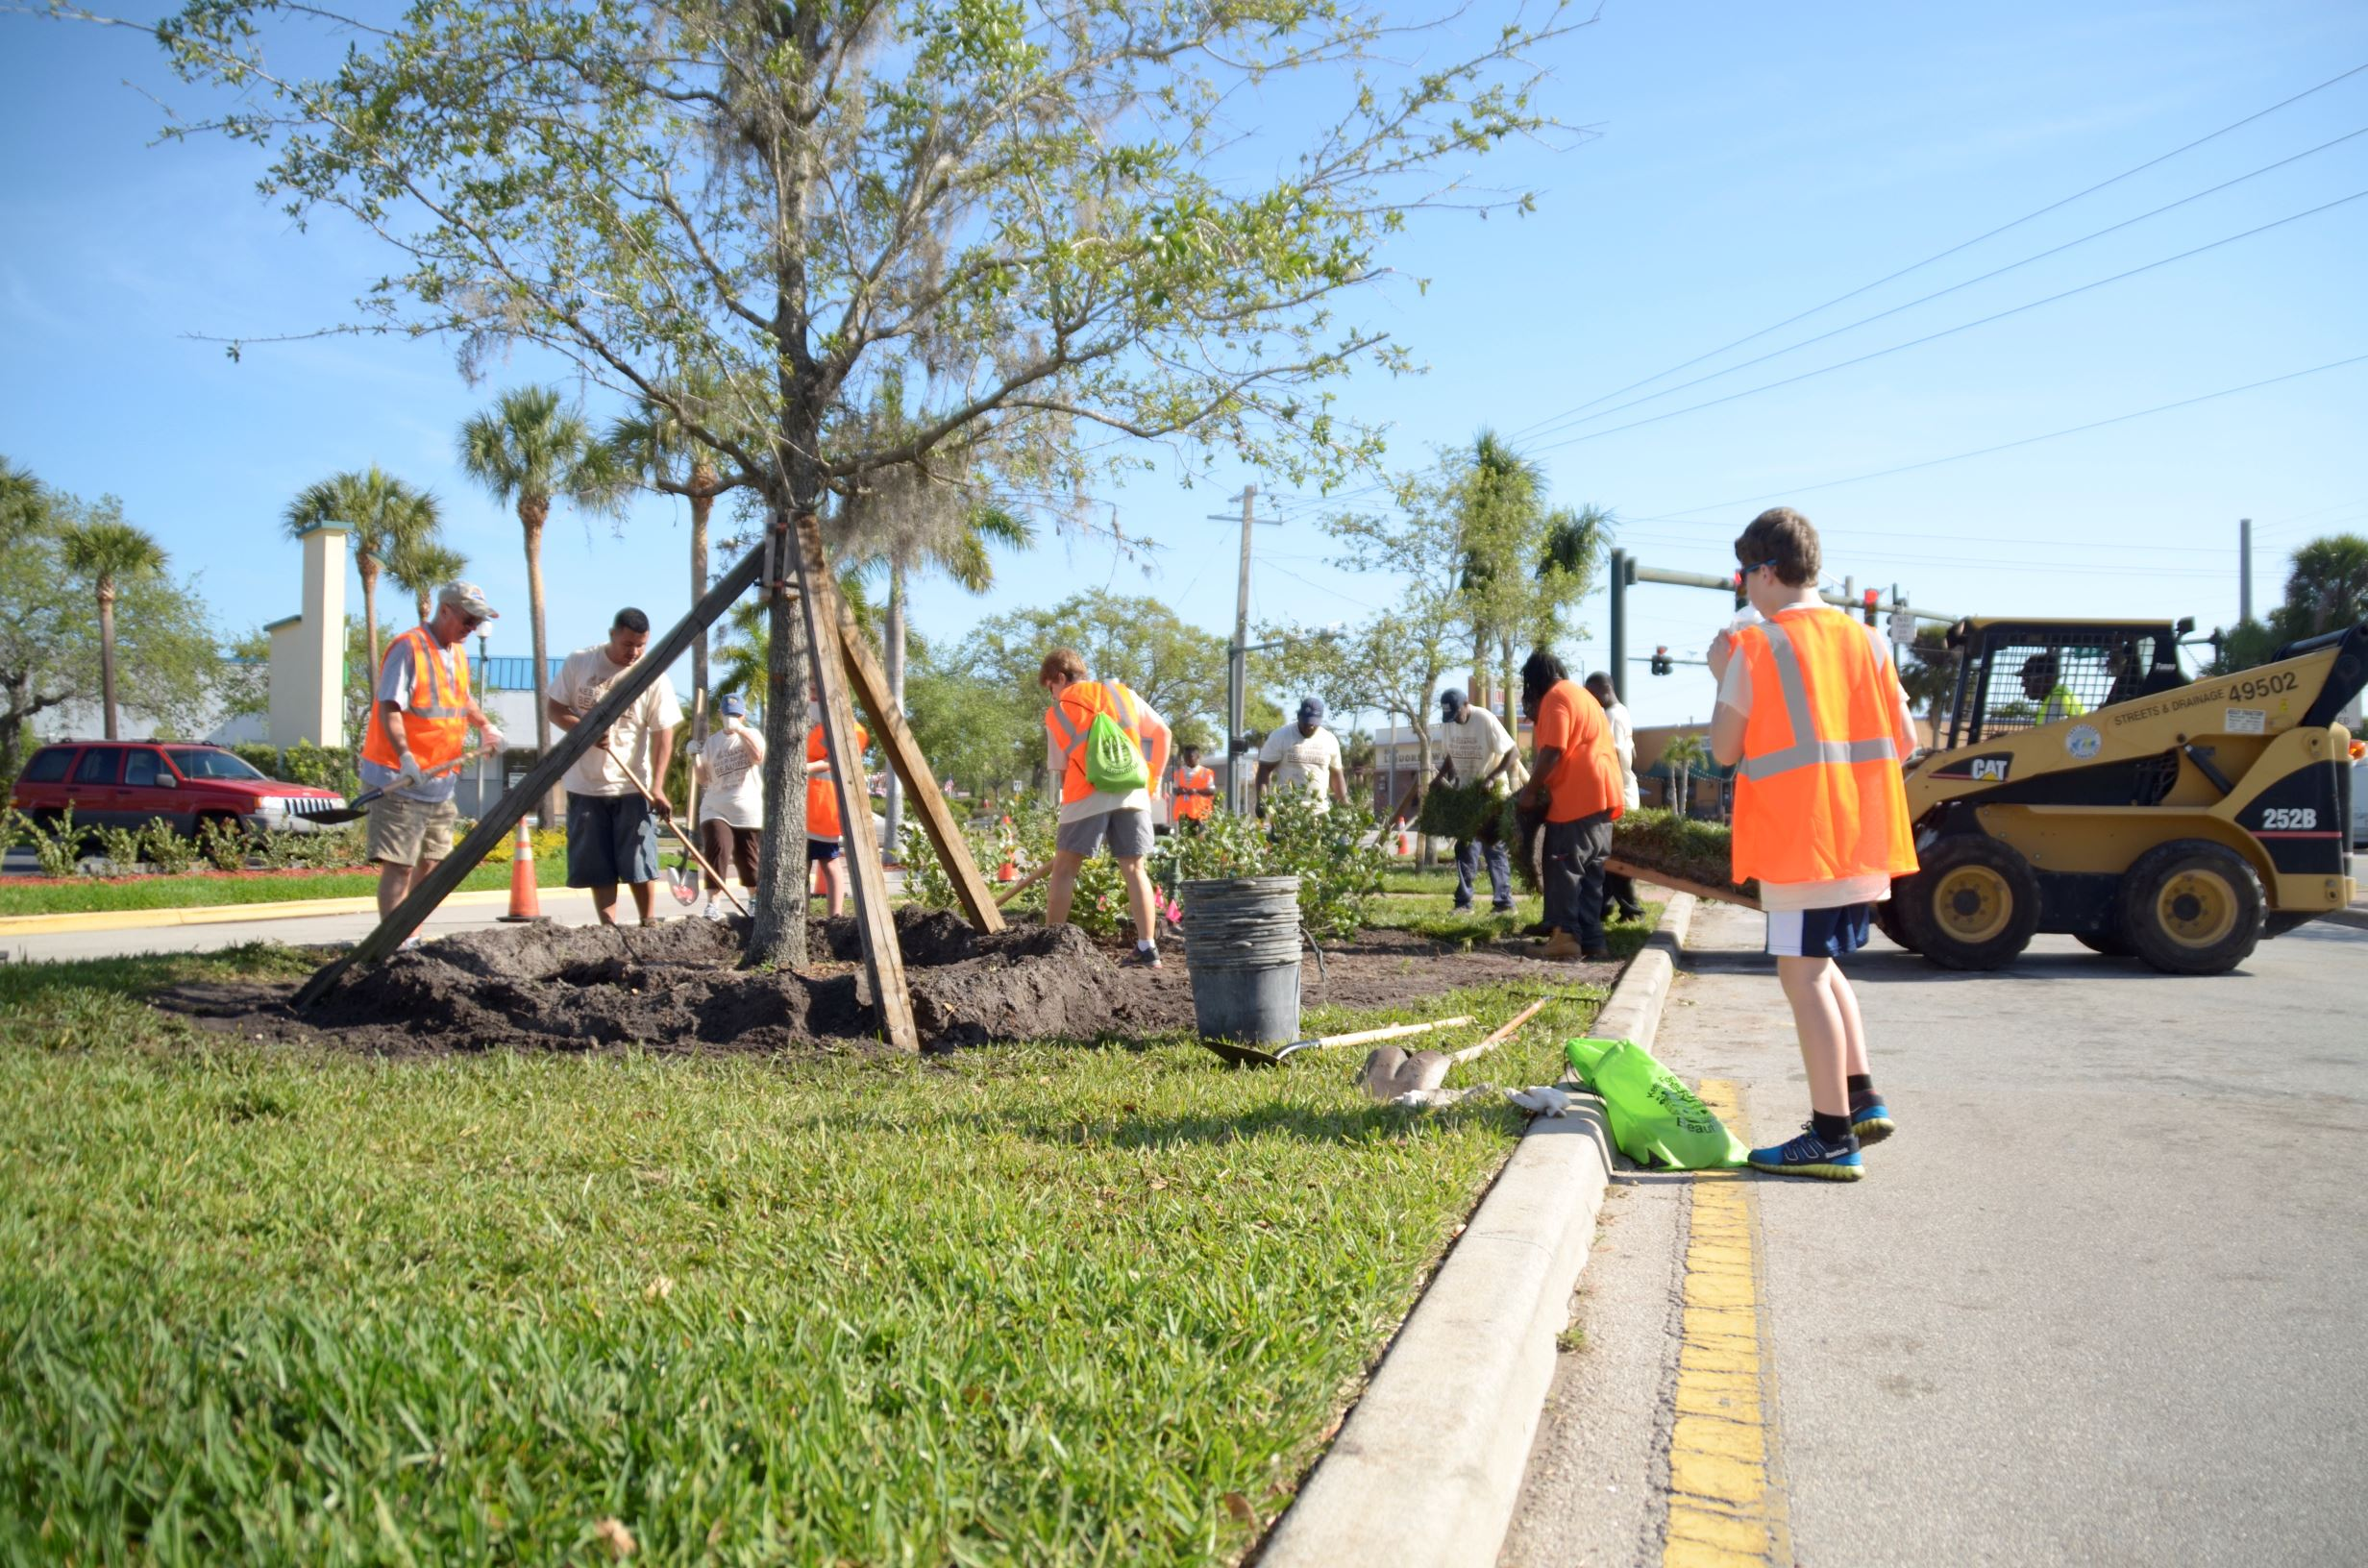 Great American Cleanup Sunrise Blvd